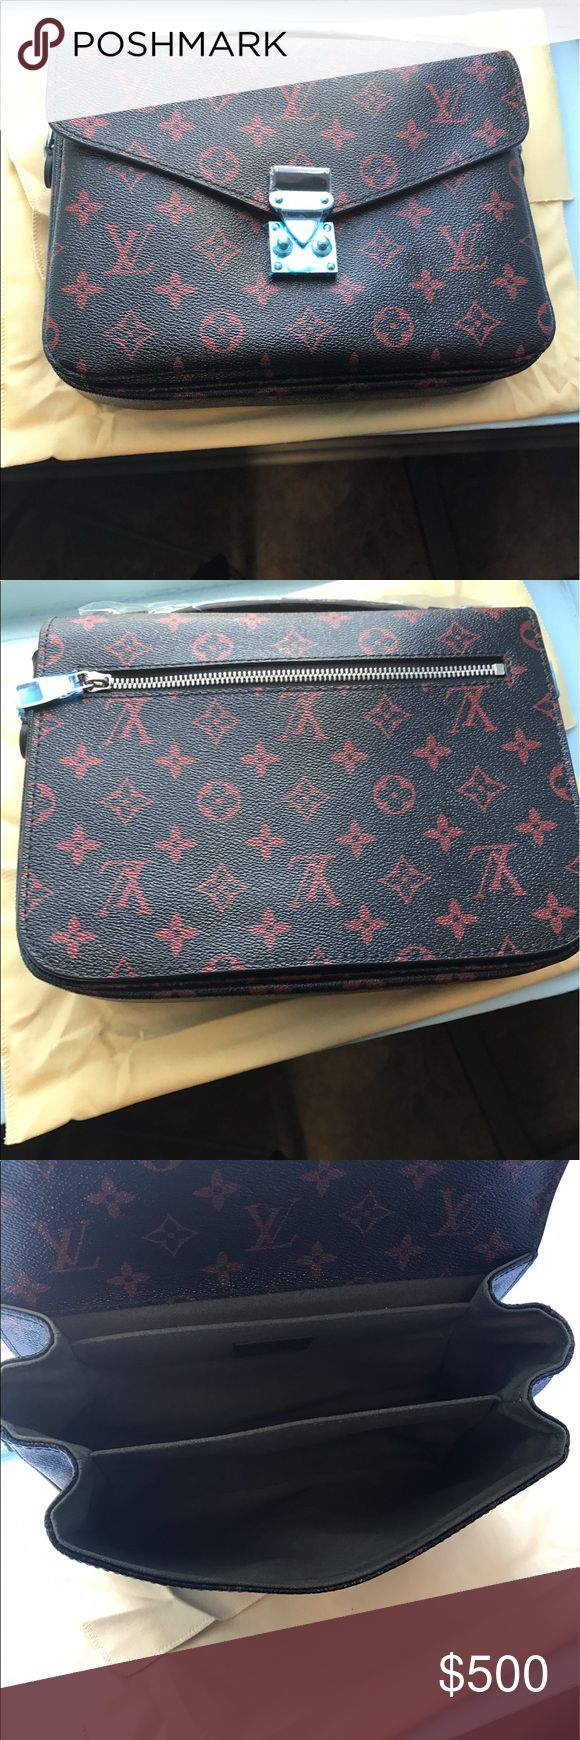 Louis Vuitton Infrarouge Pouchette Metis Gorgeous Infrarouge red and black Louis. No proof of purchase. Louis Vuitton Bags Crossbody Bags